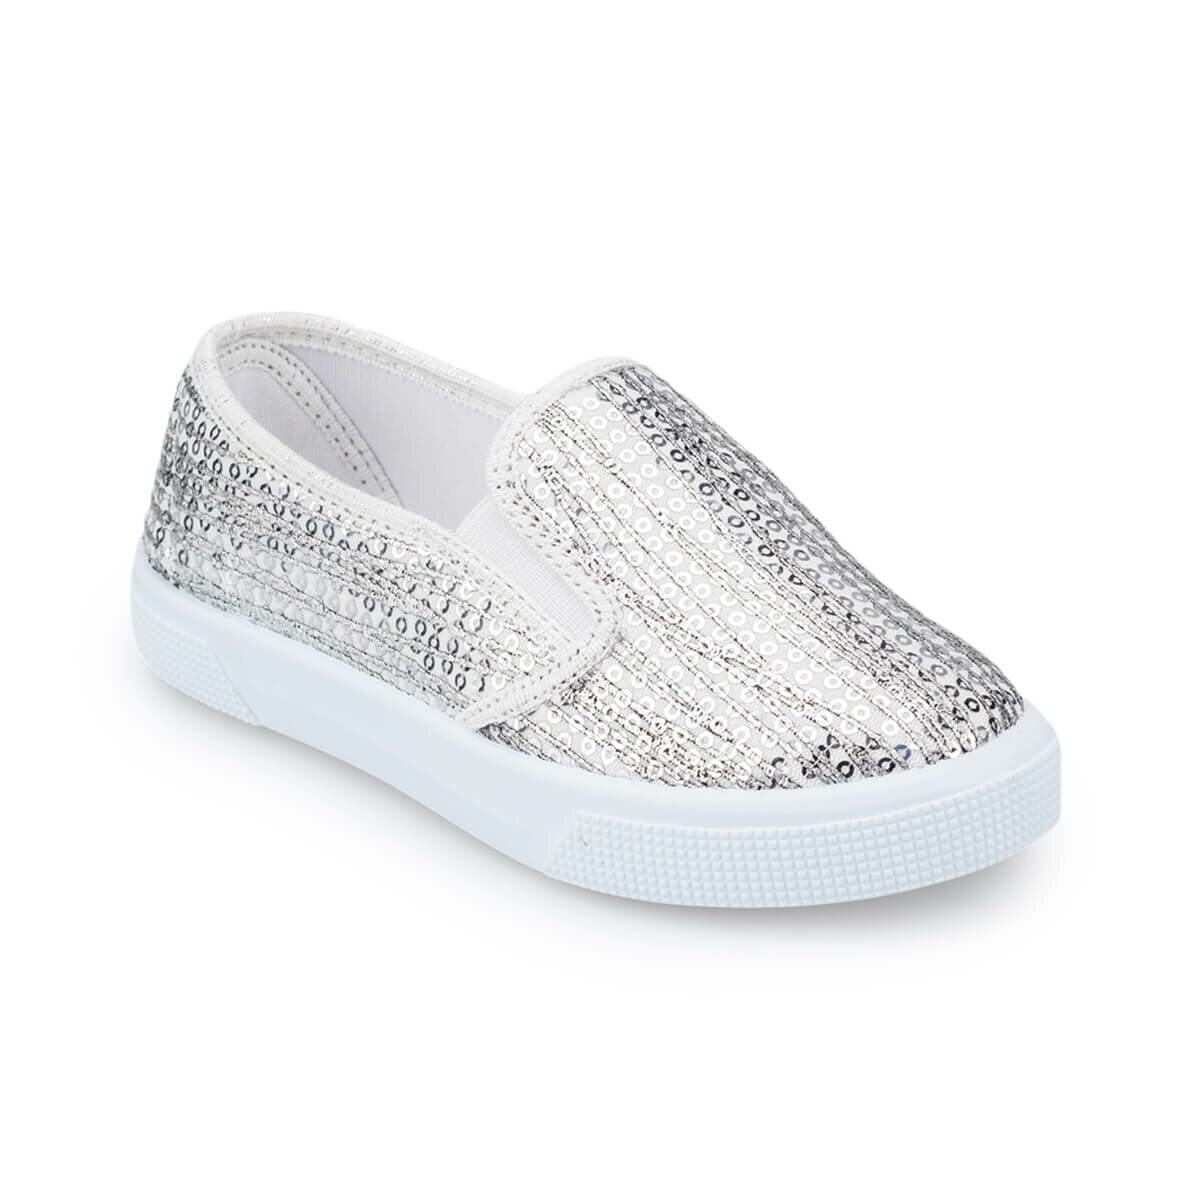 FLO 91.511433.P Gray Female Child Shoes Polaris